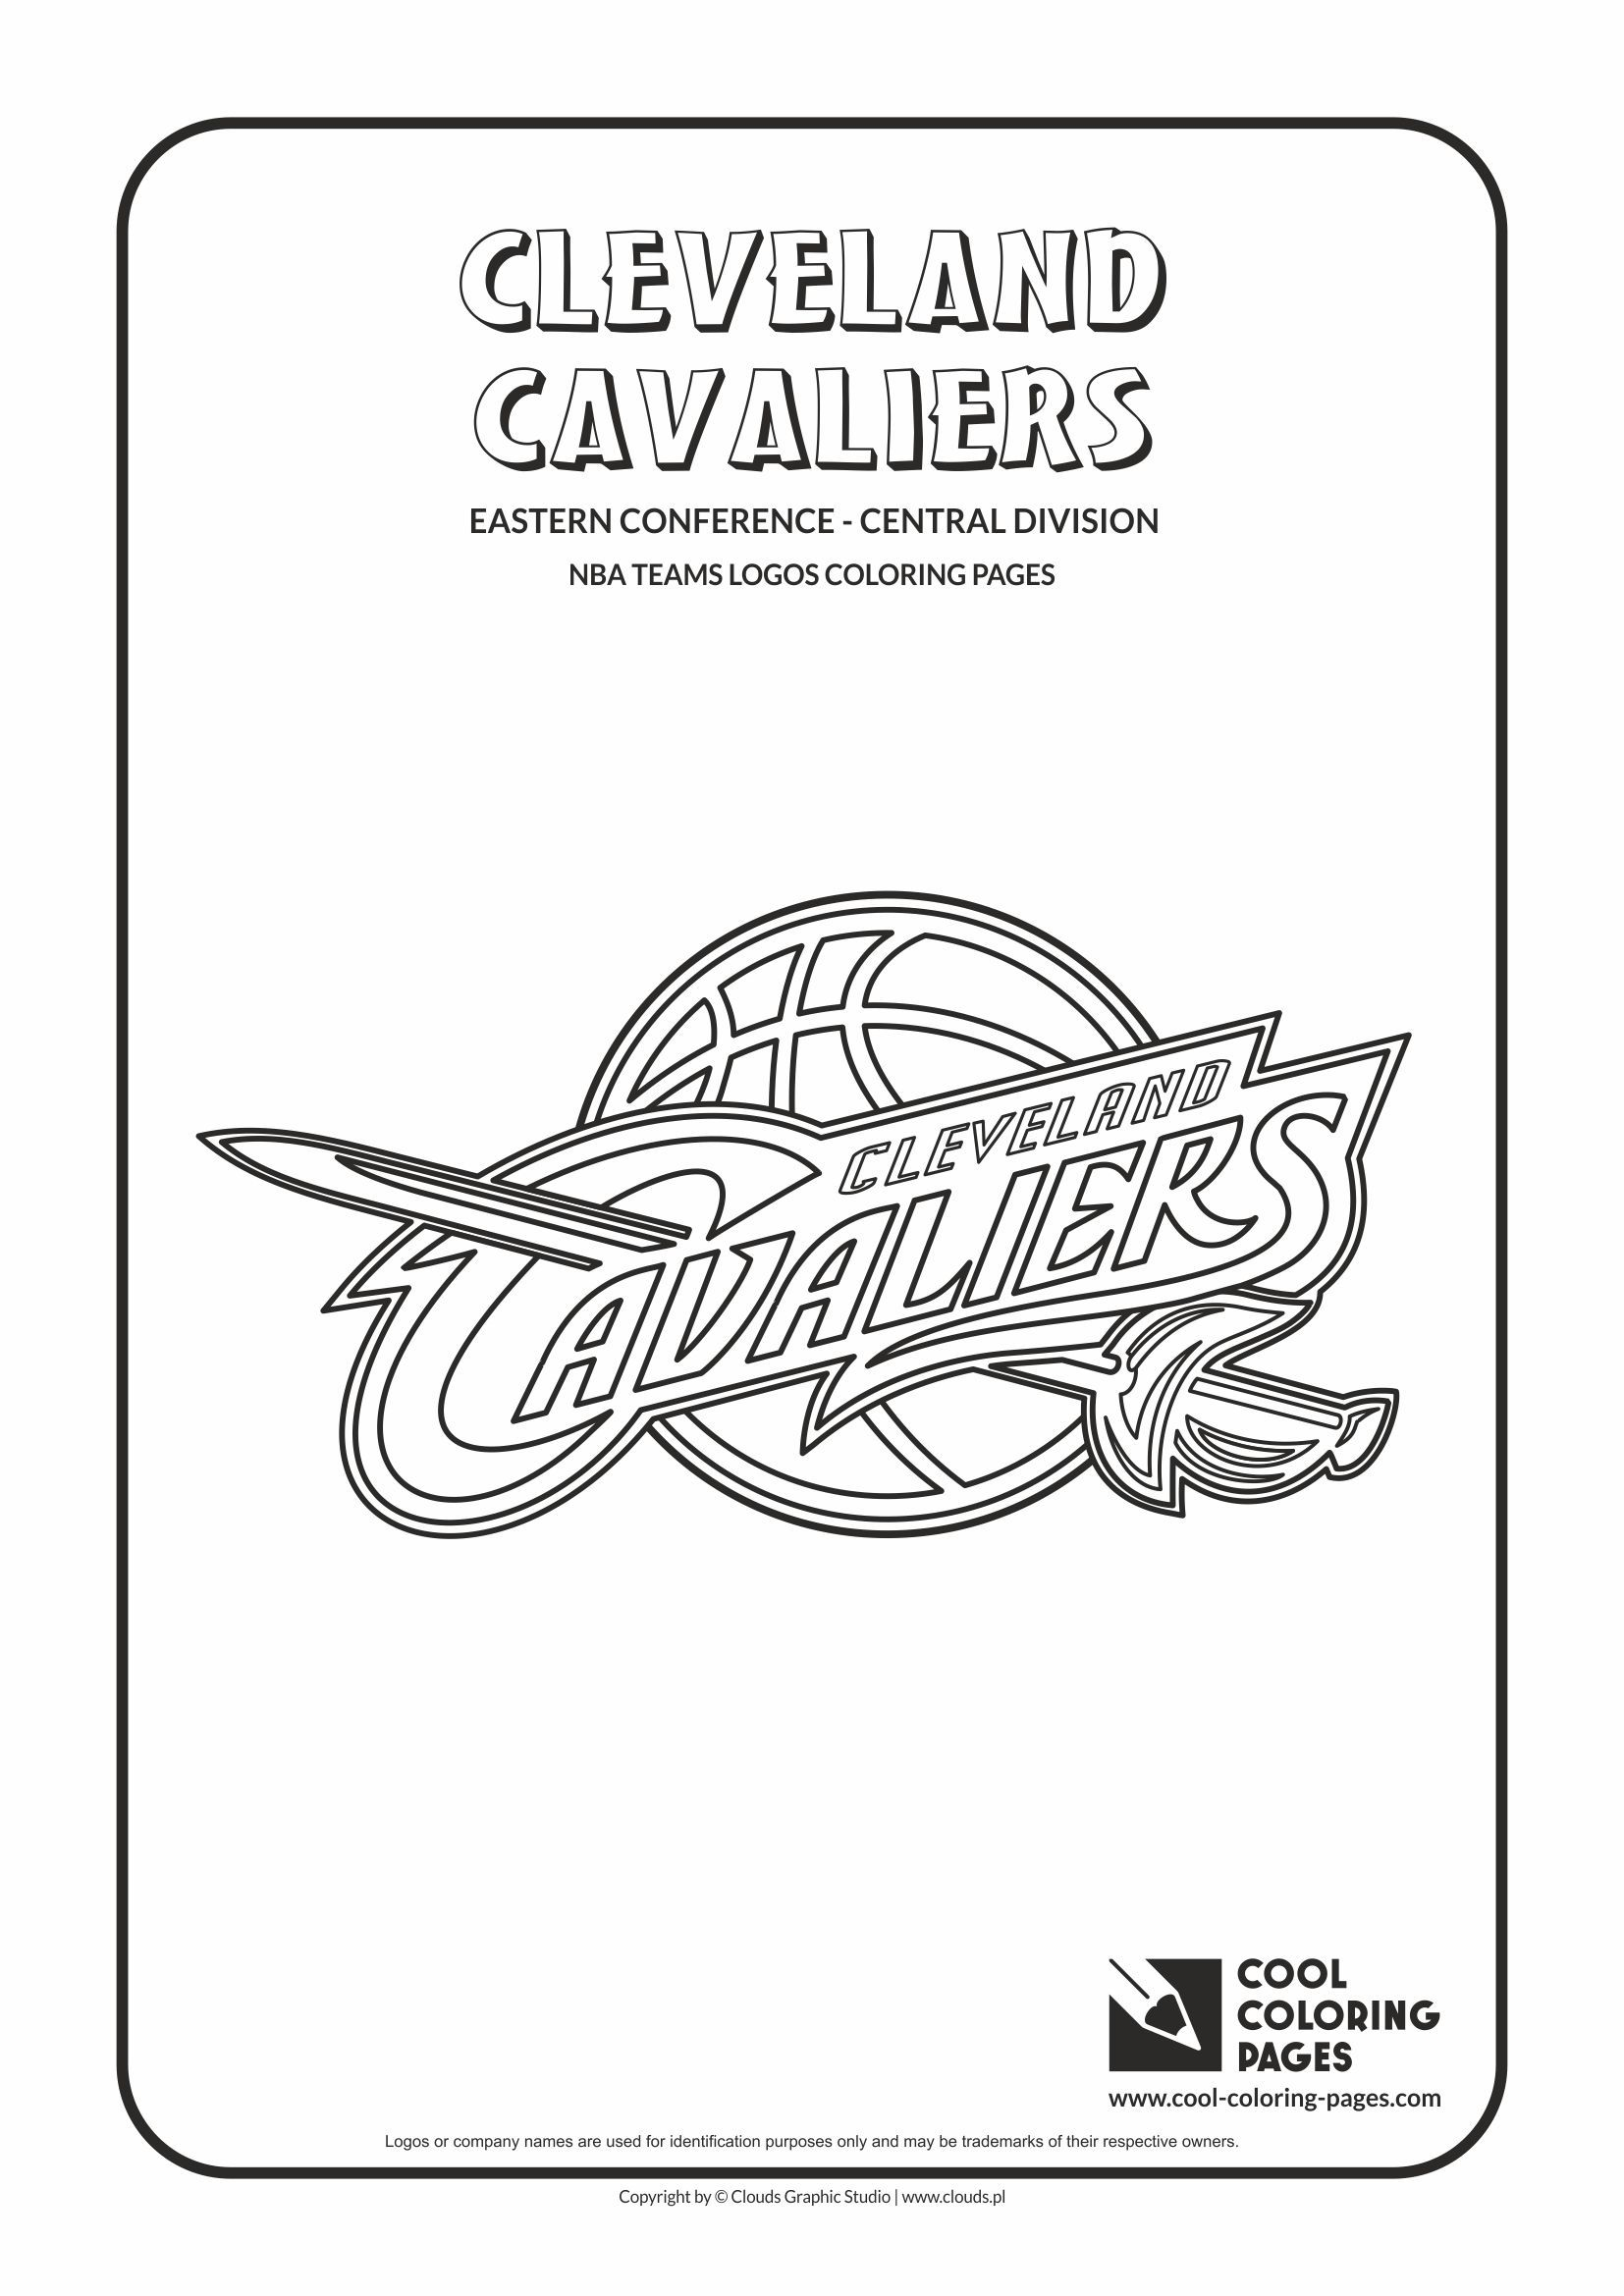 Cool Coloring Pages - NBA Teams Logos / Cleveland Cavaliers logo ...